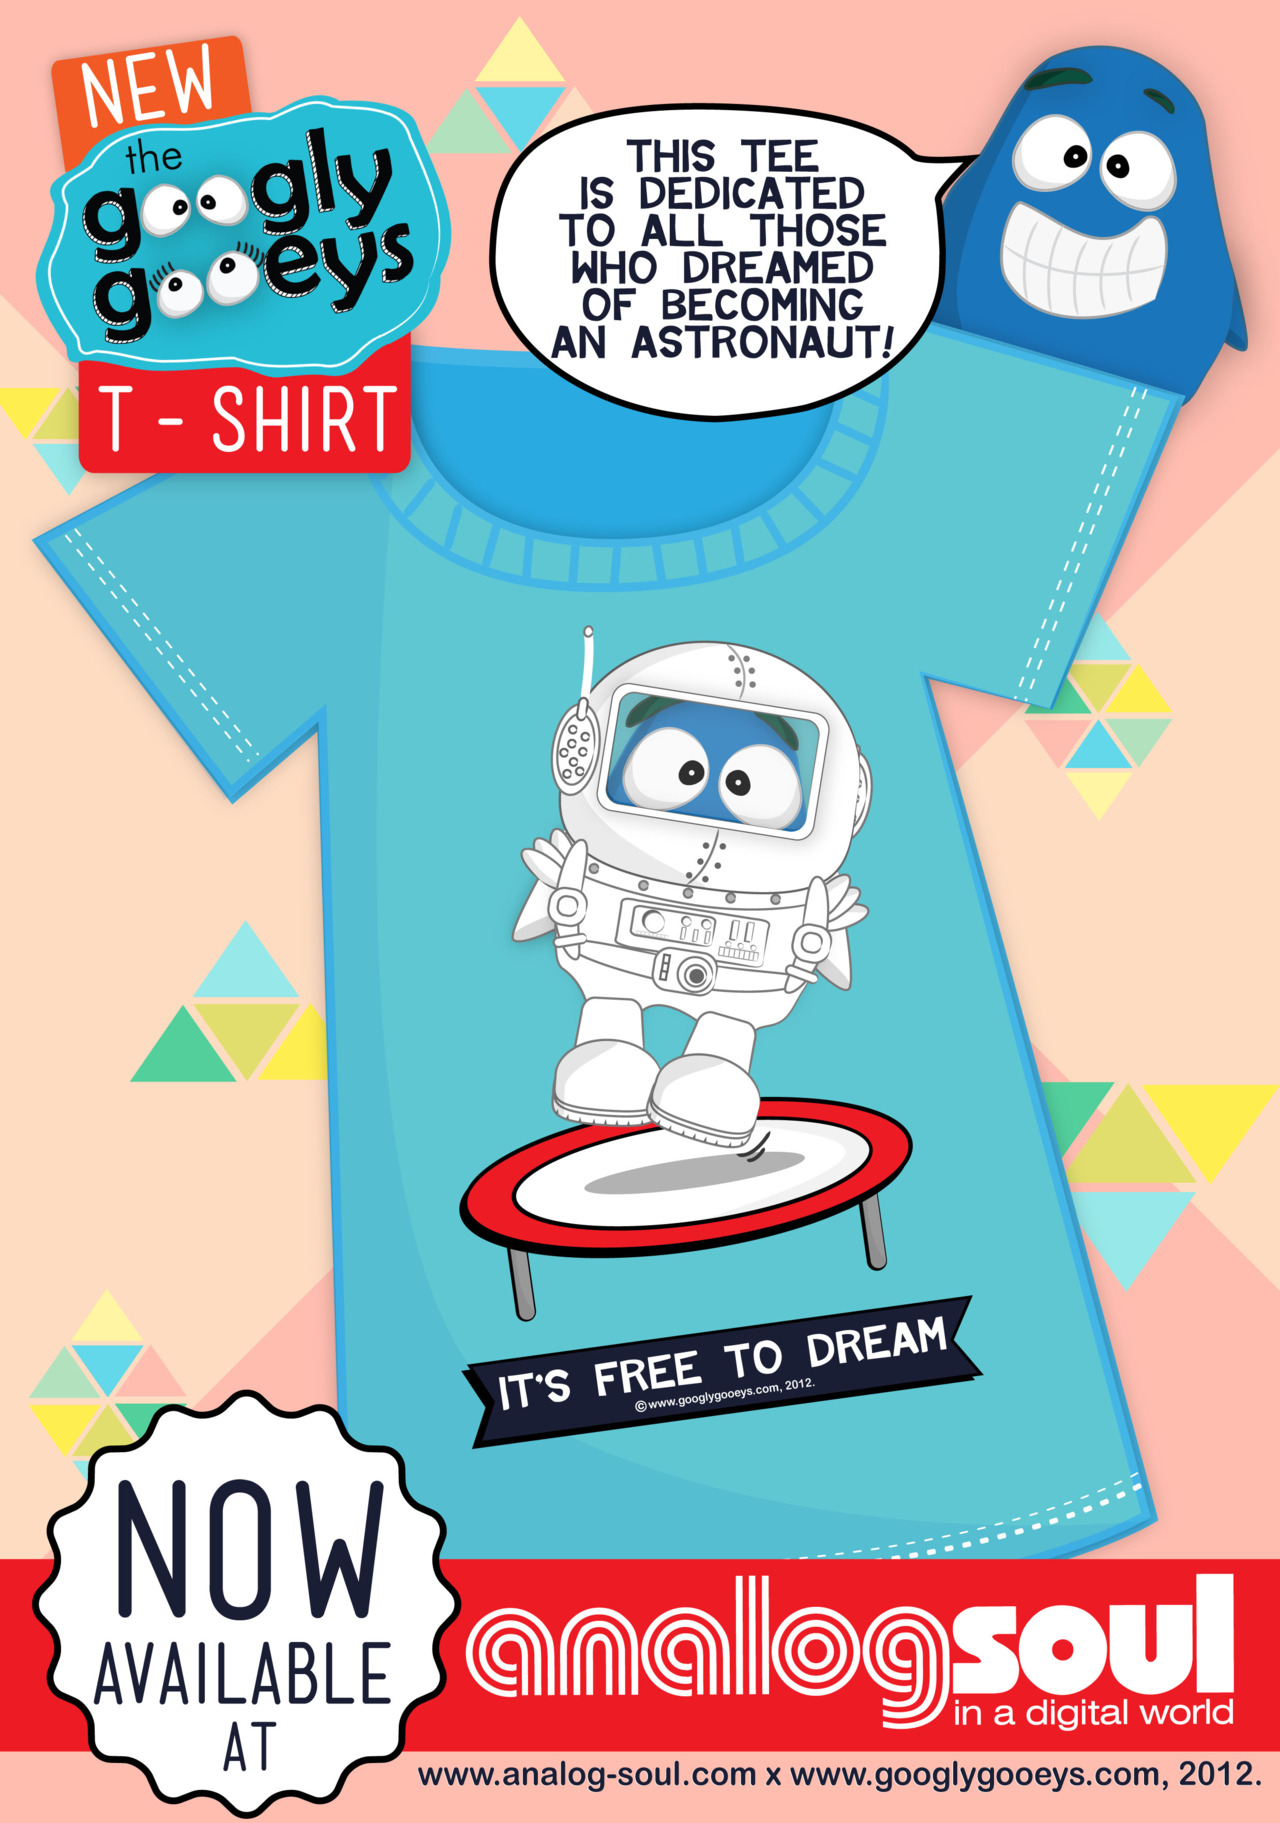 This tee is dedicated to all of you who dreamed of becoming an astronaut. Well, whether you'reon your way to working for NASA someday or simply jumping on a trampoline and enjoying your tiny moments mid-air, this shirt is for ya!